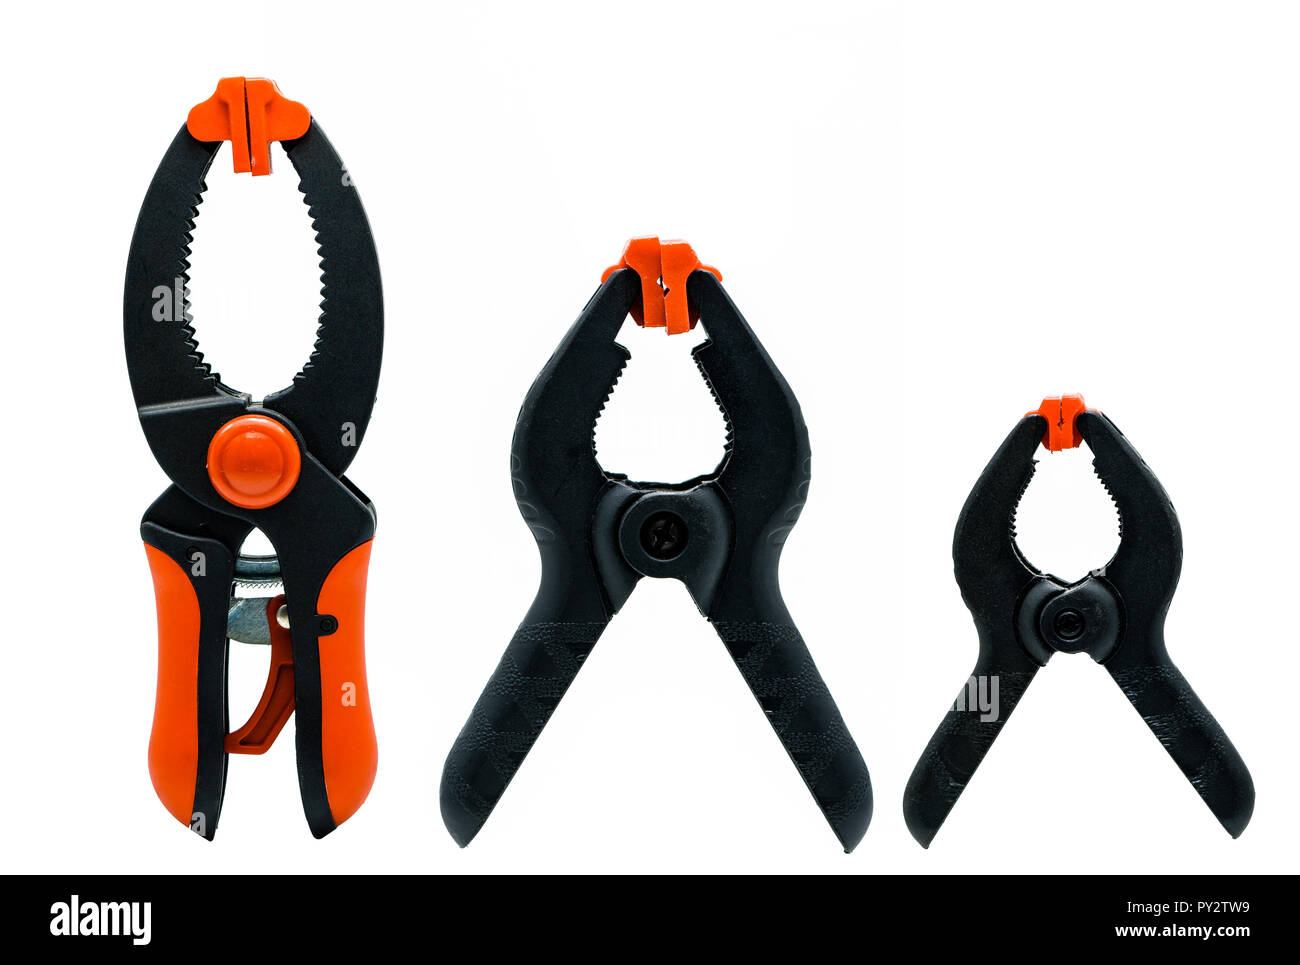 Black and orange spring clamp isolated on white background. Set of small, medium, and big size of plastic clamp. Clamping tools for carpentry work. Ha - Stock Image